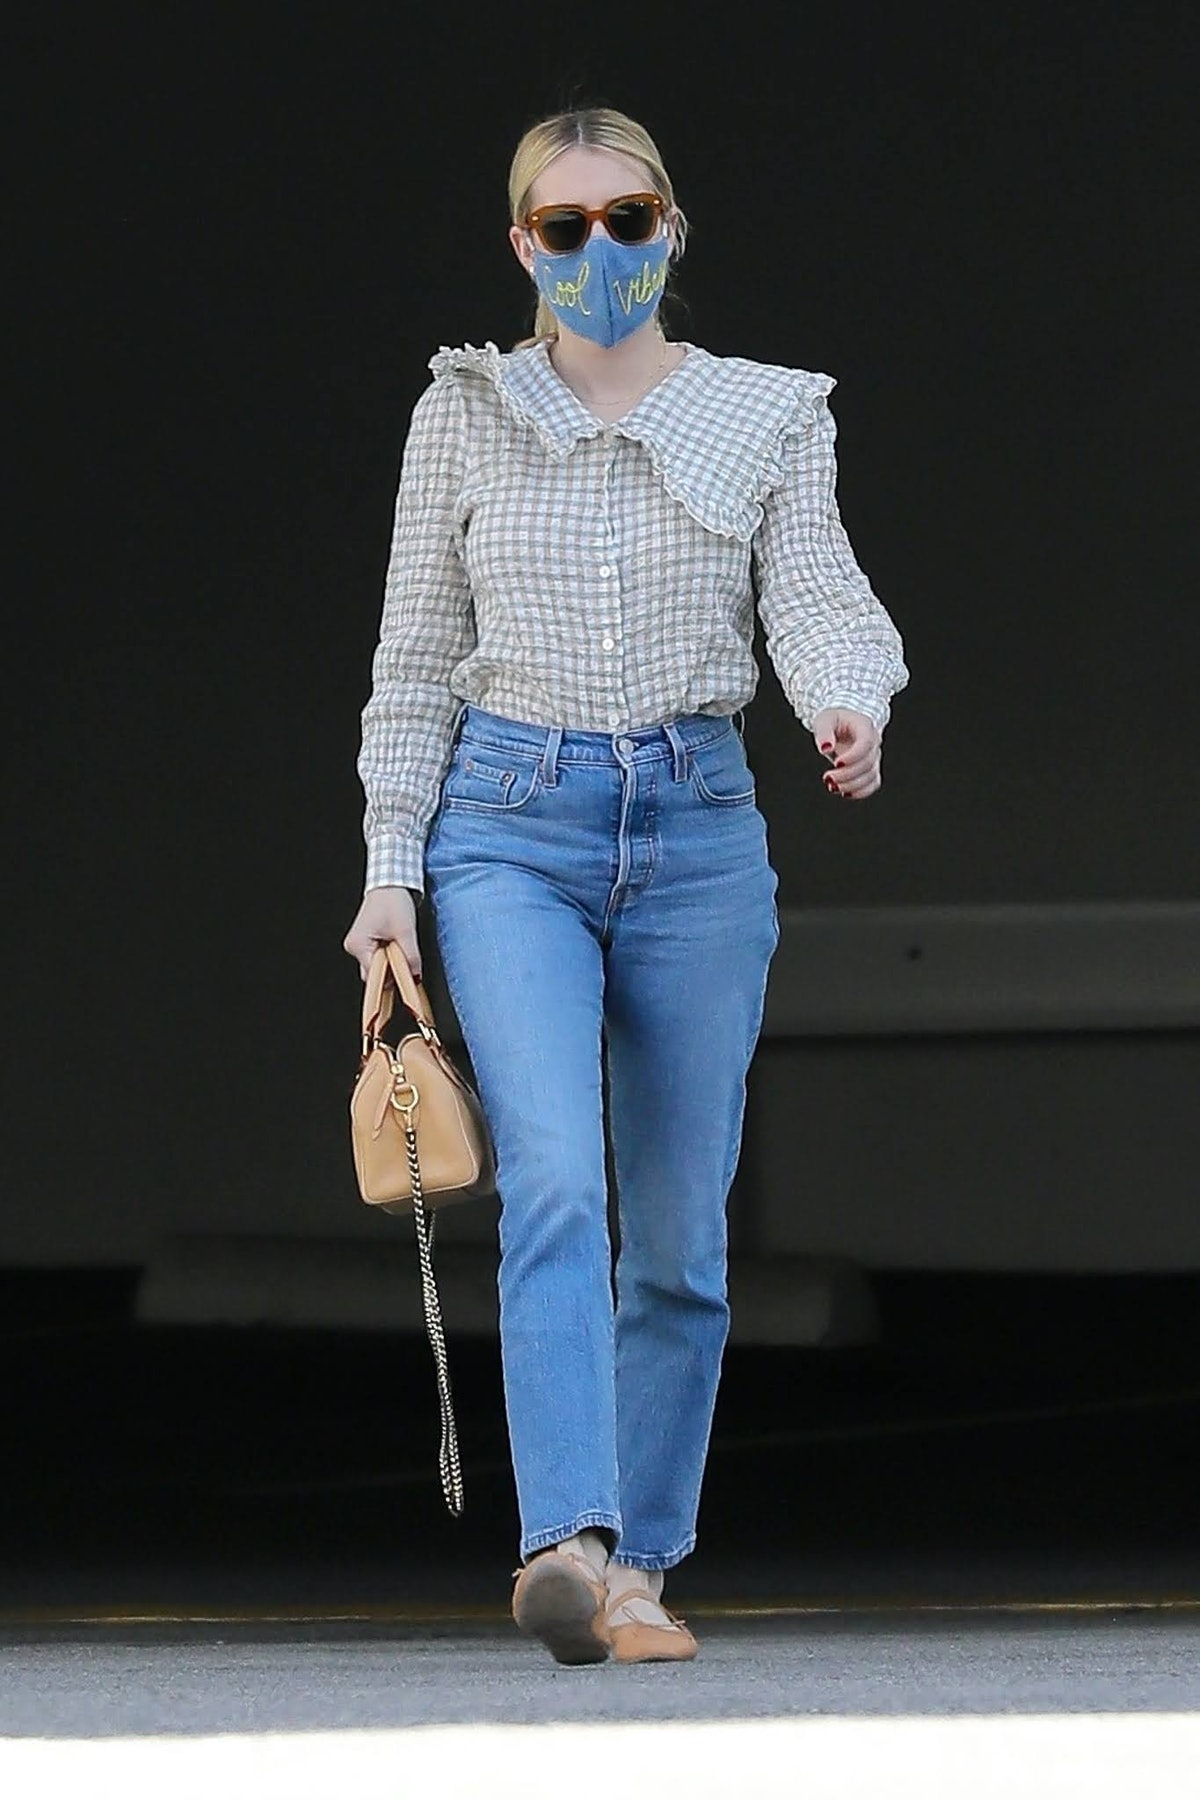 Emma Roberts wearing denim in West Hollywood in April 2021.